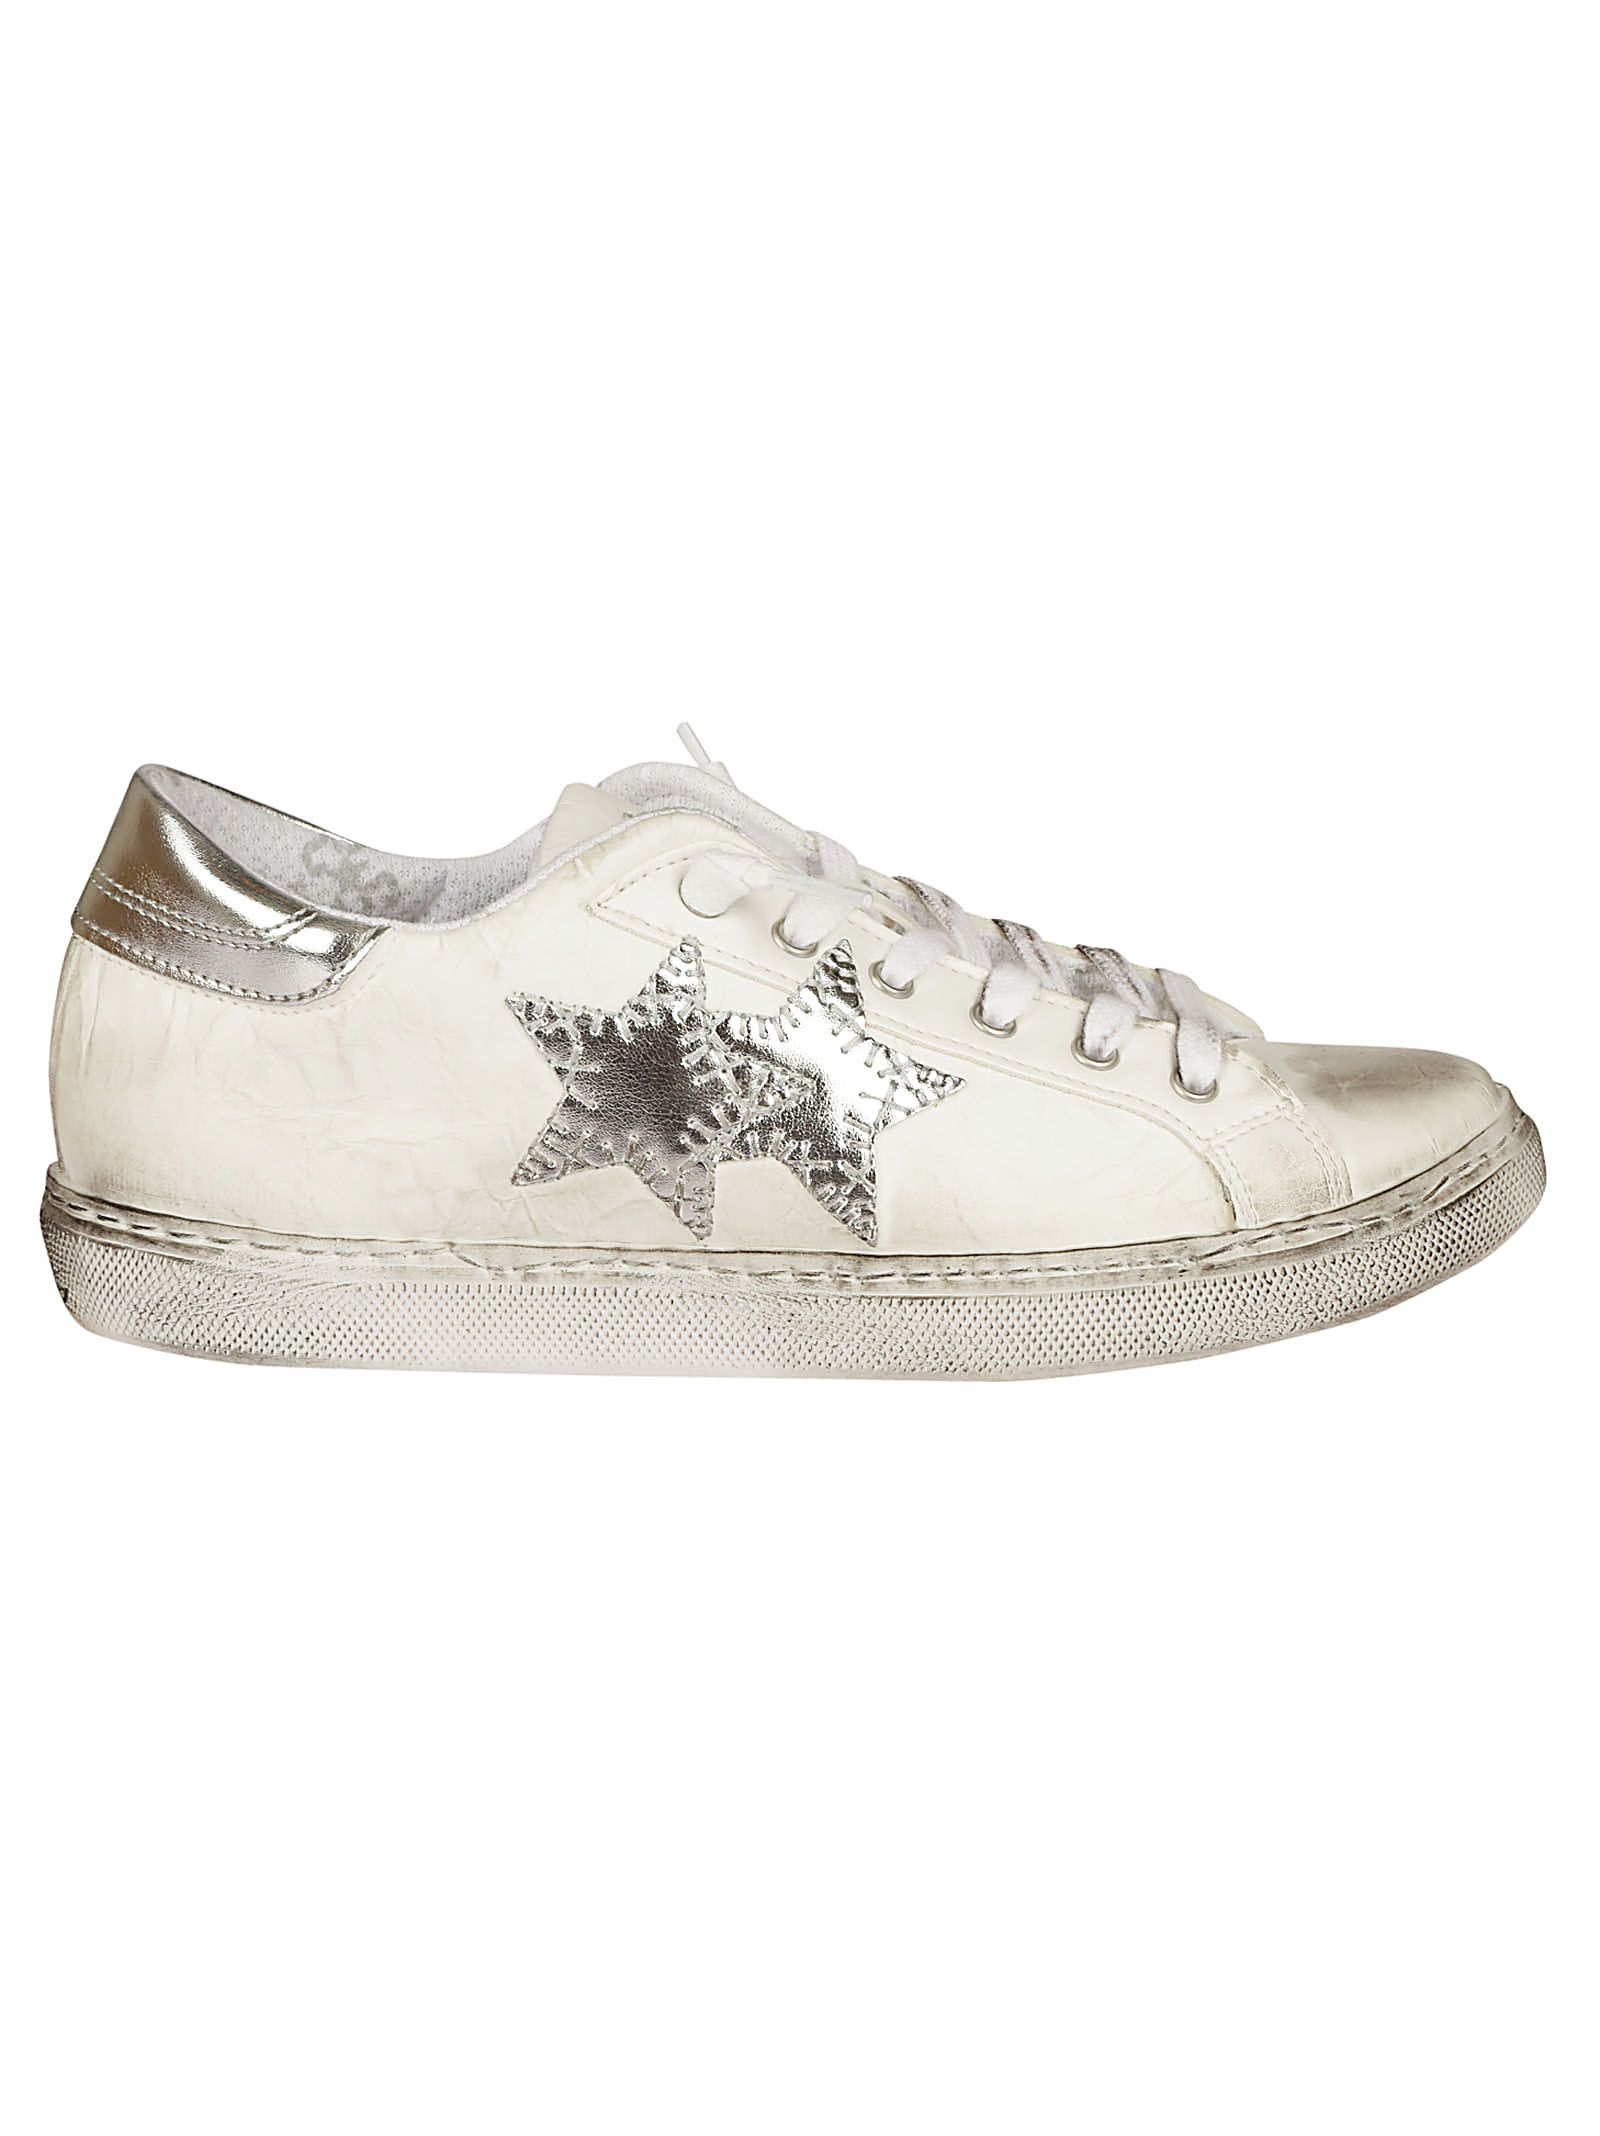 2star female 2star star patch sneakers